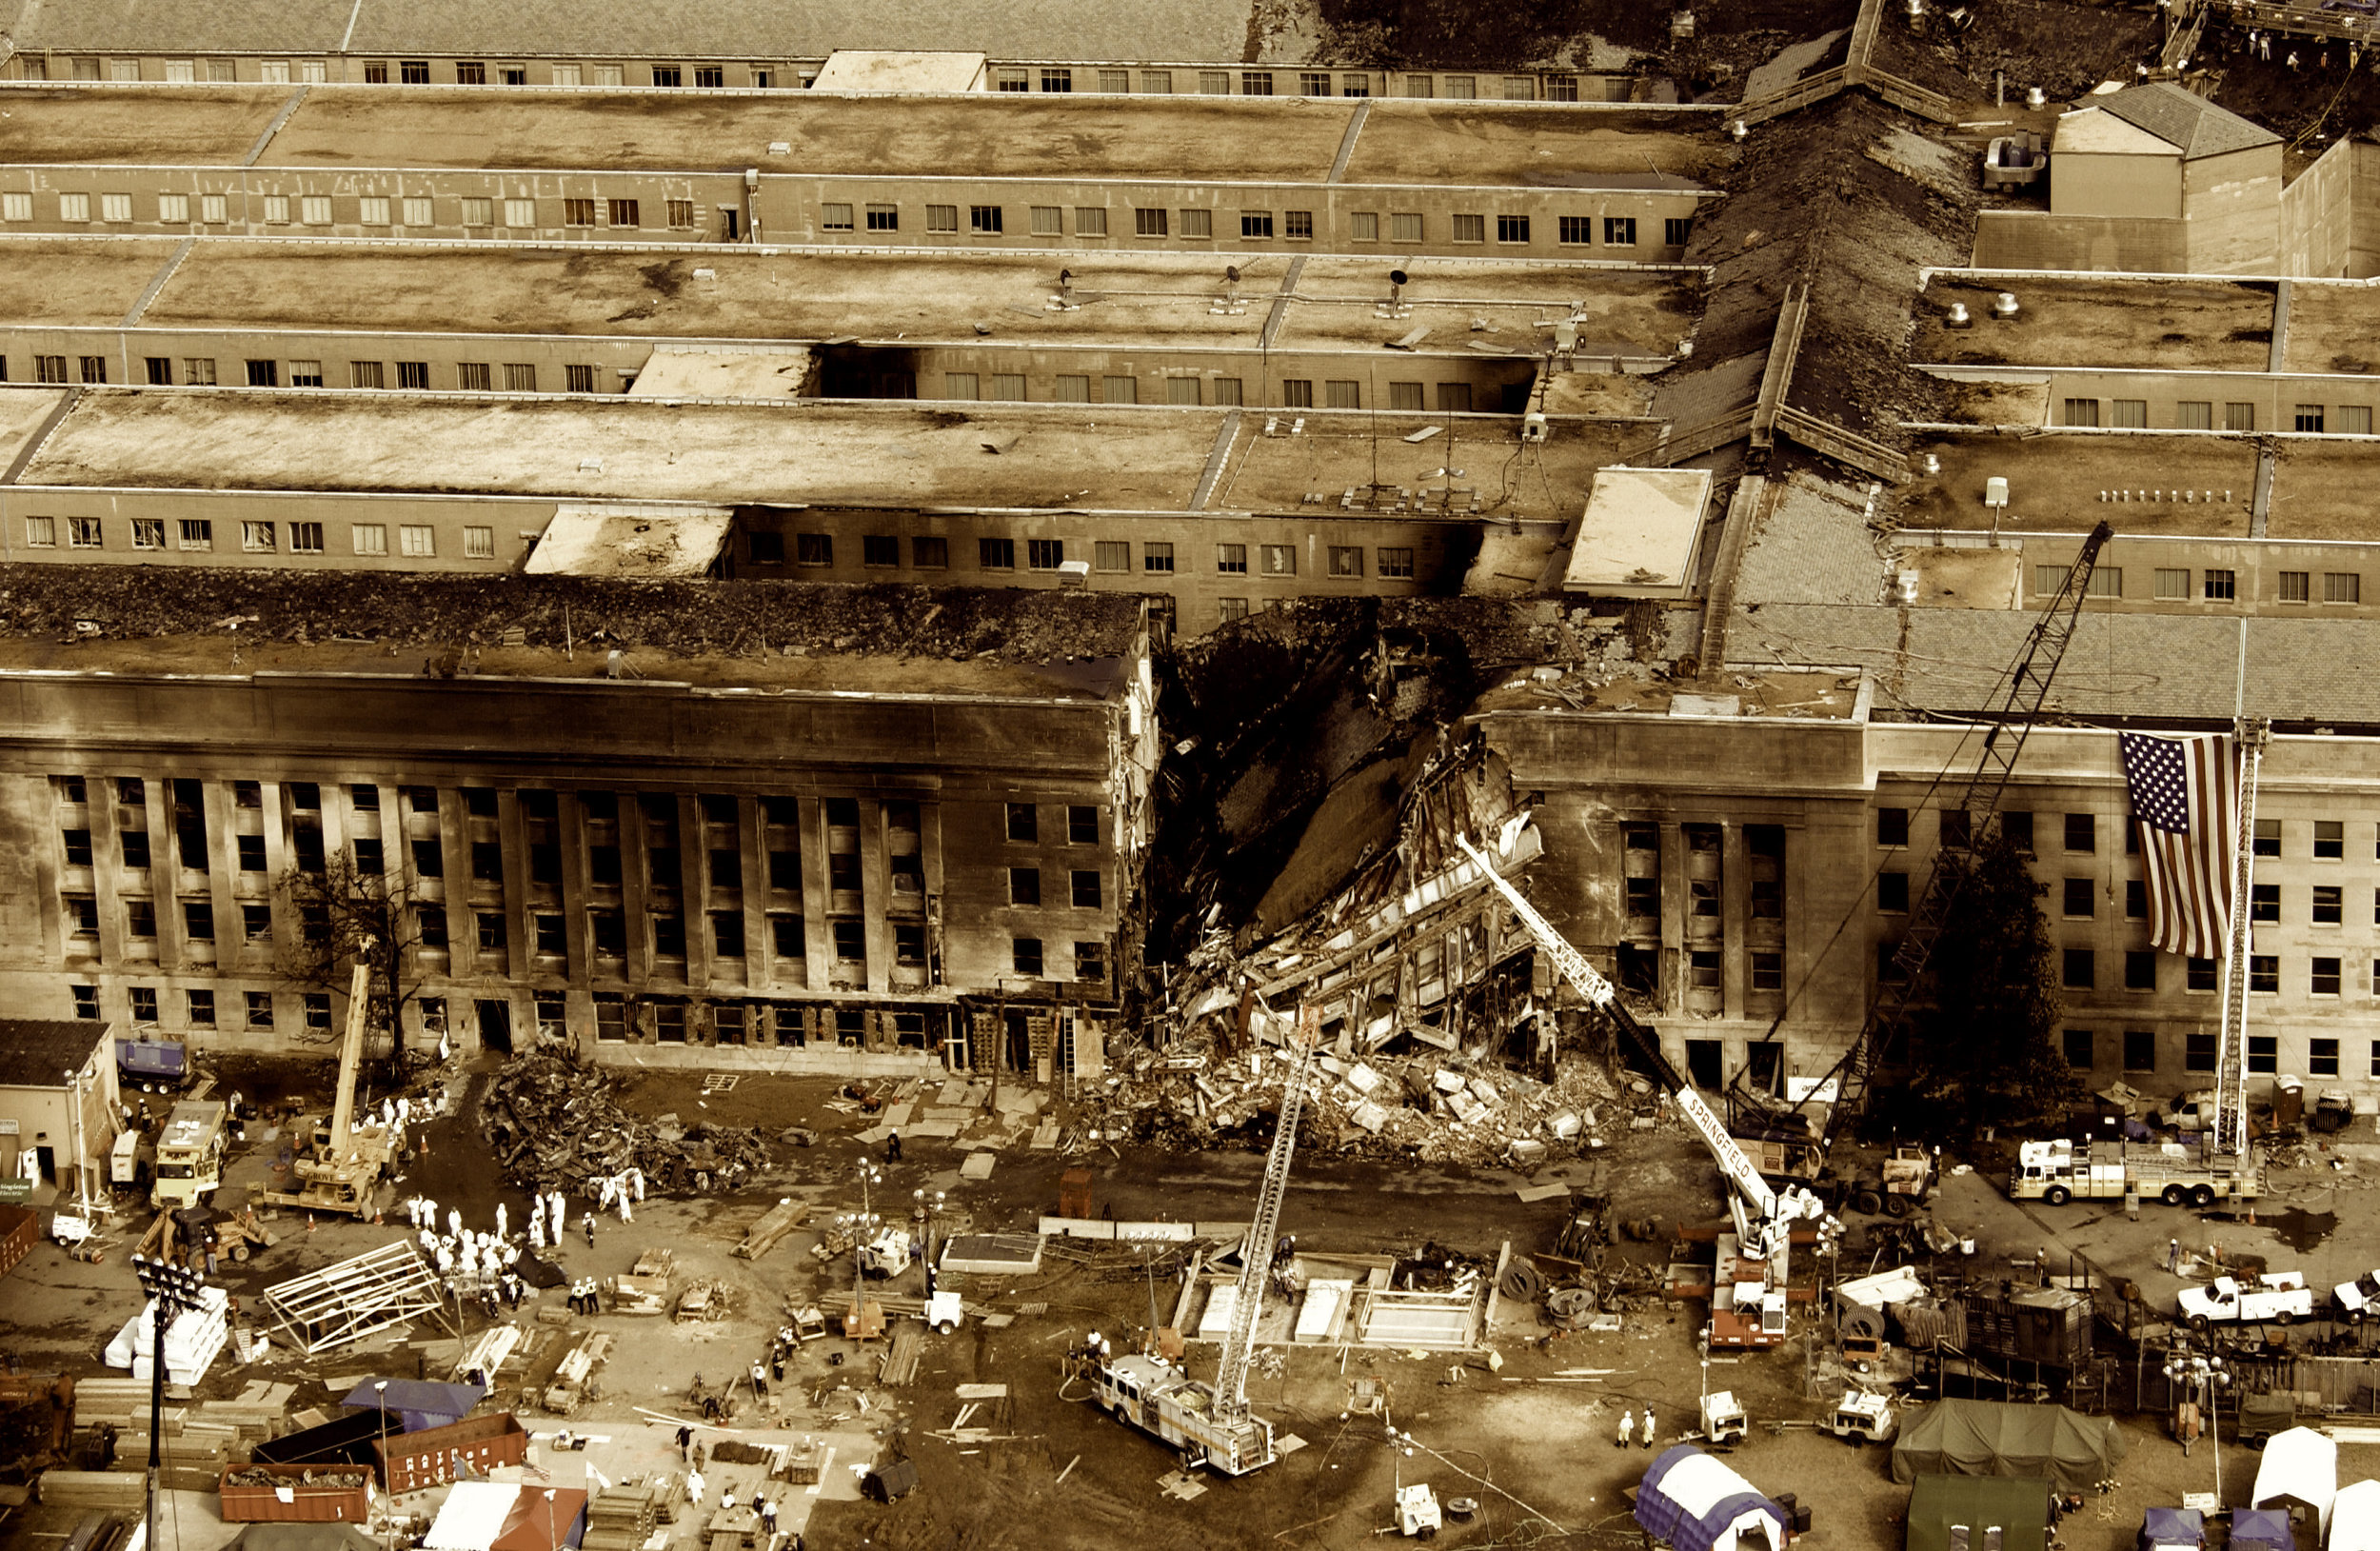 The Pentagon, During Rescue / Recovery Operations 2001/09/11